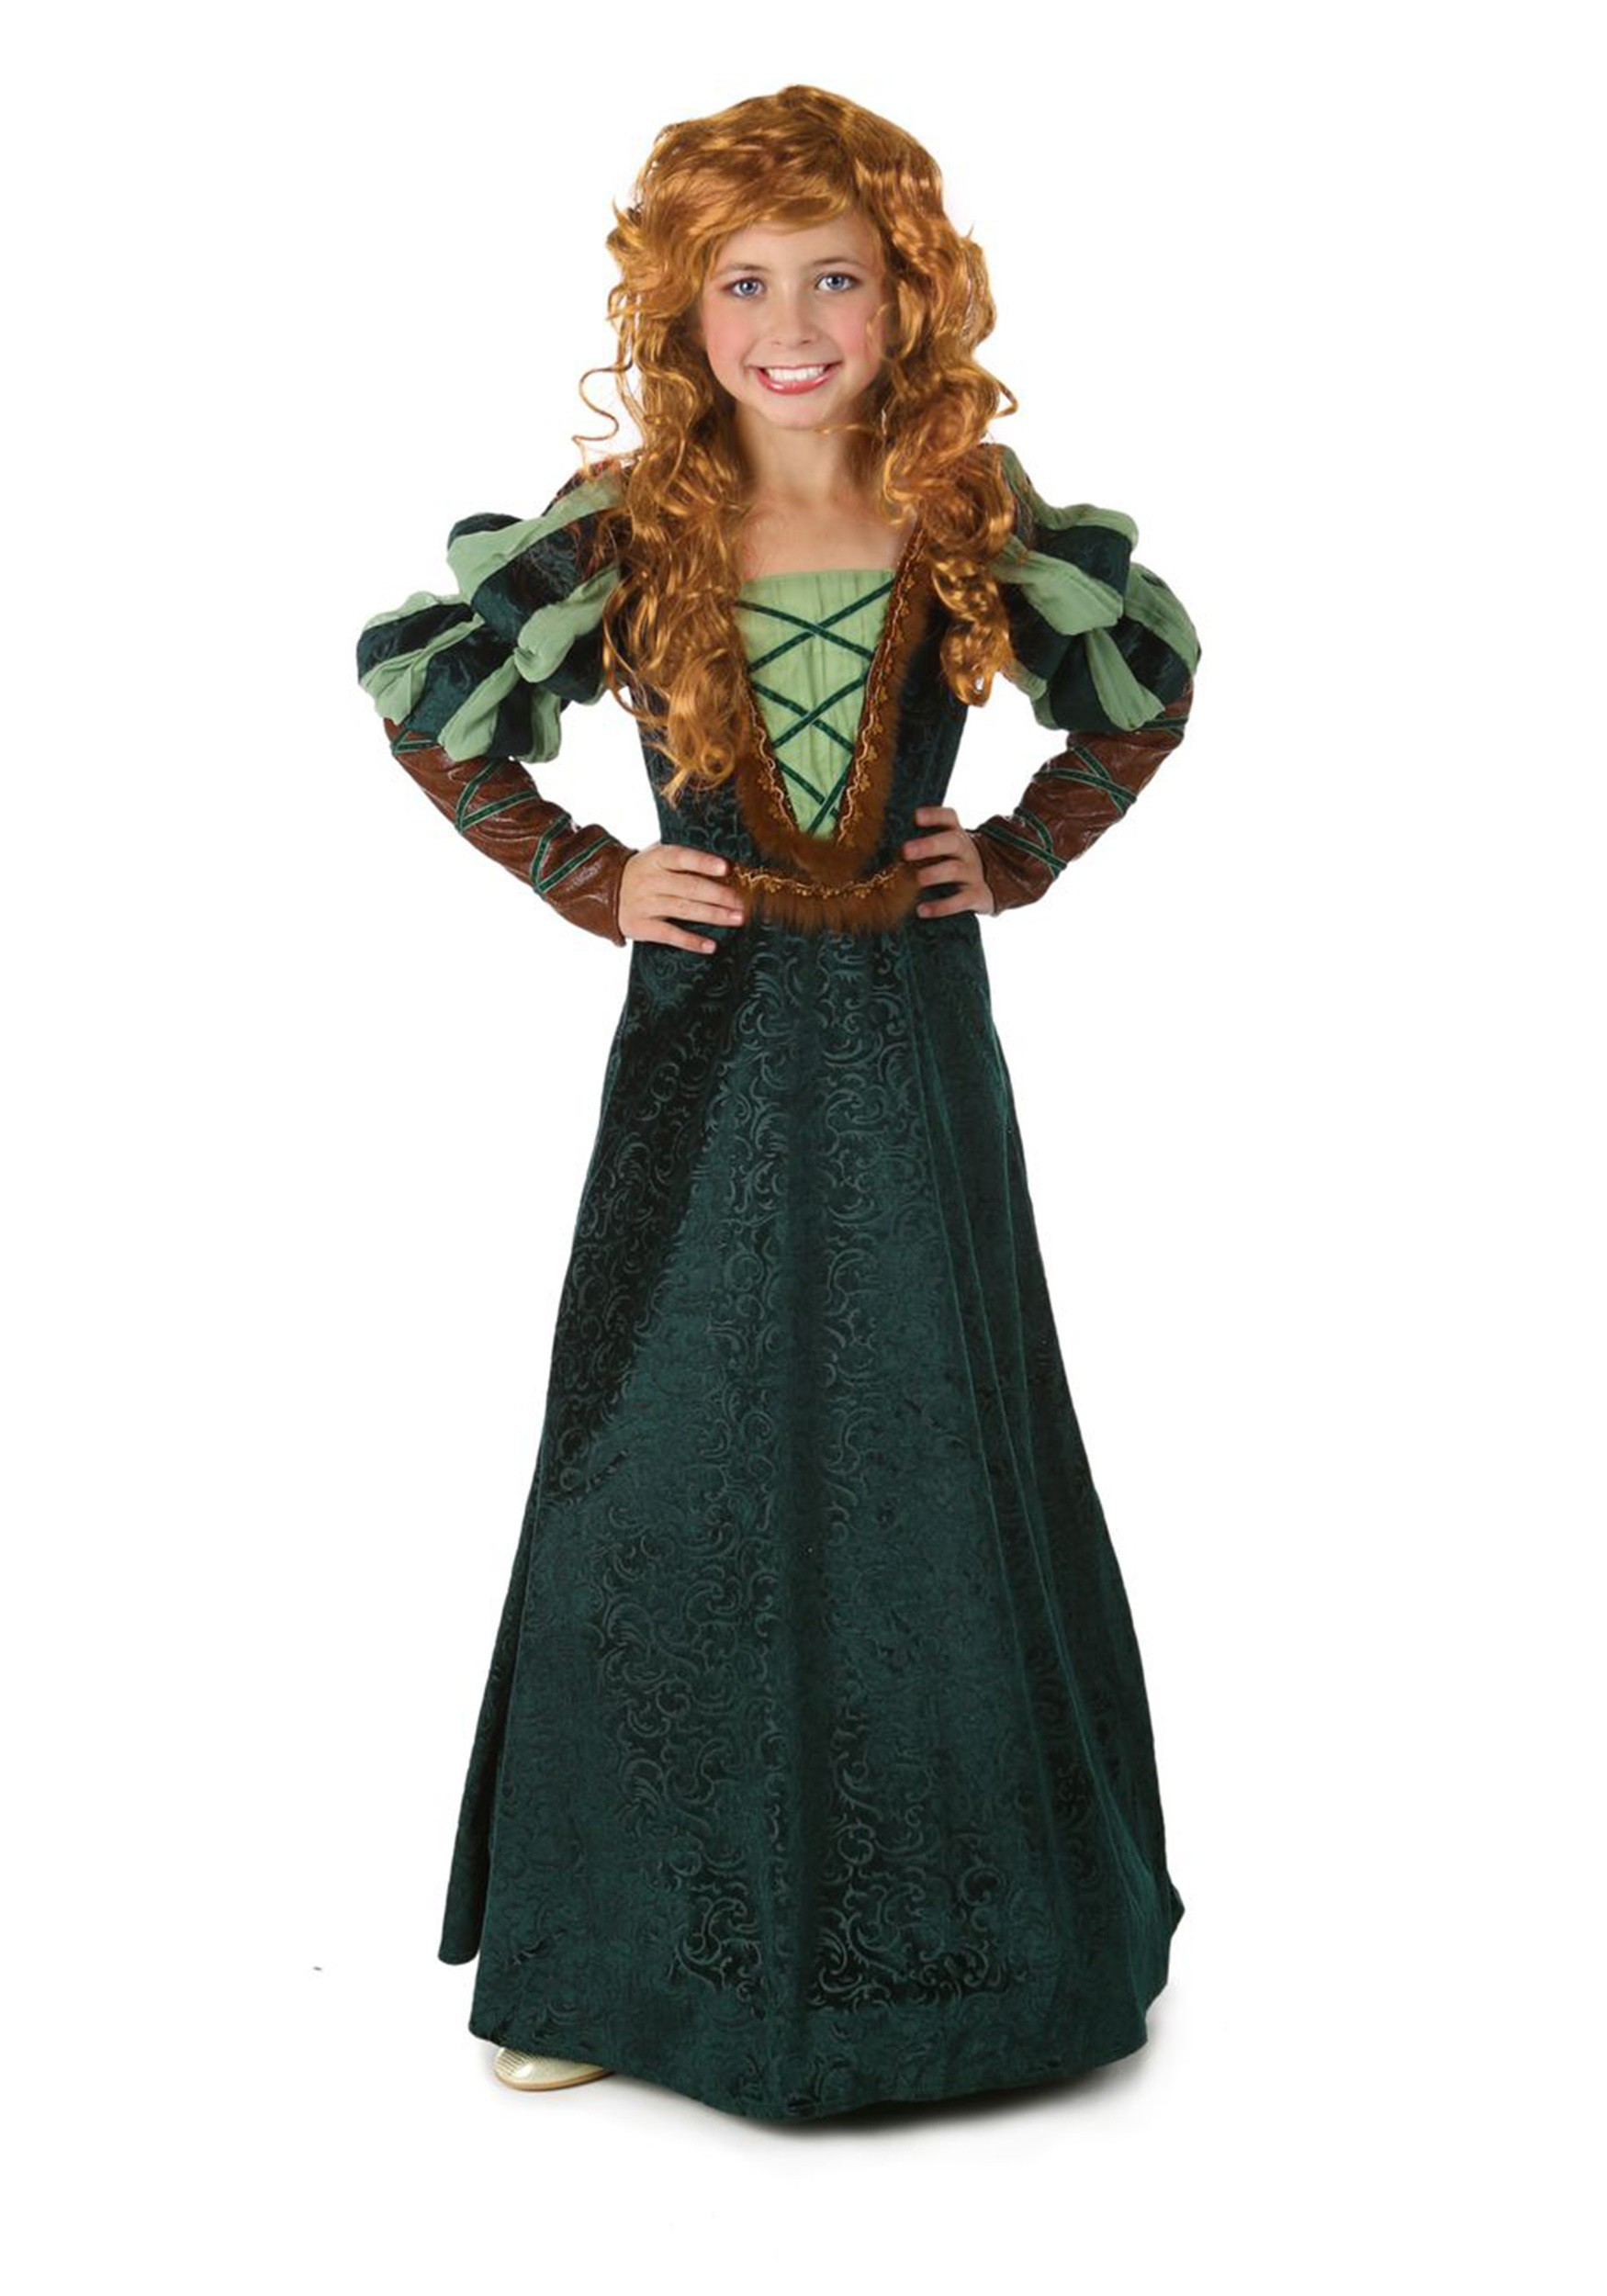 Child Courageous Princess Costume  sc 1 st  Halloween Costume & Child Courageous Princess Costume - Renaissance Forest Royal Costume